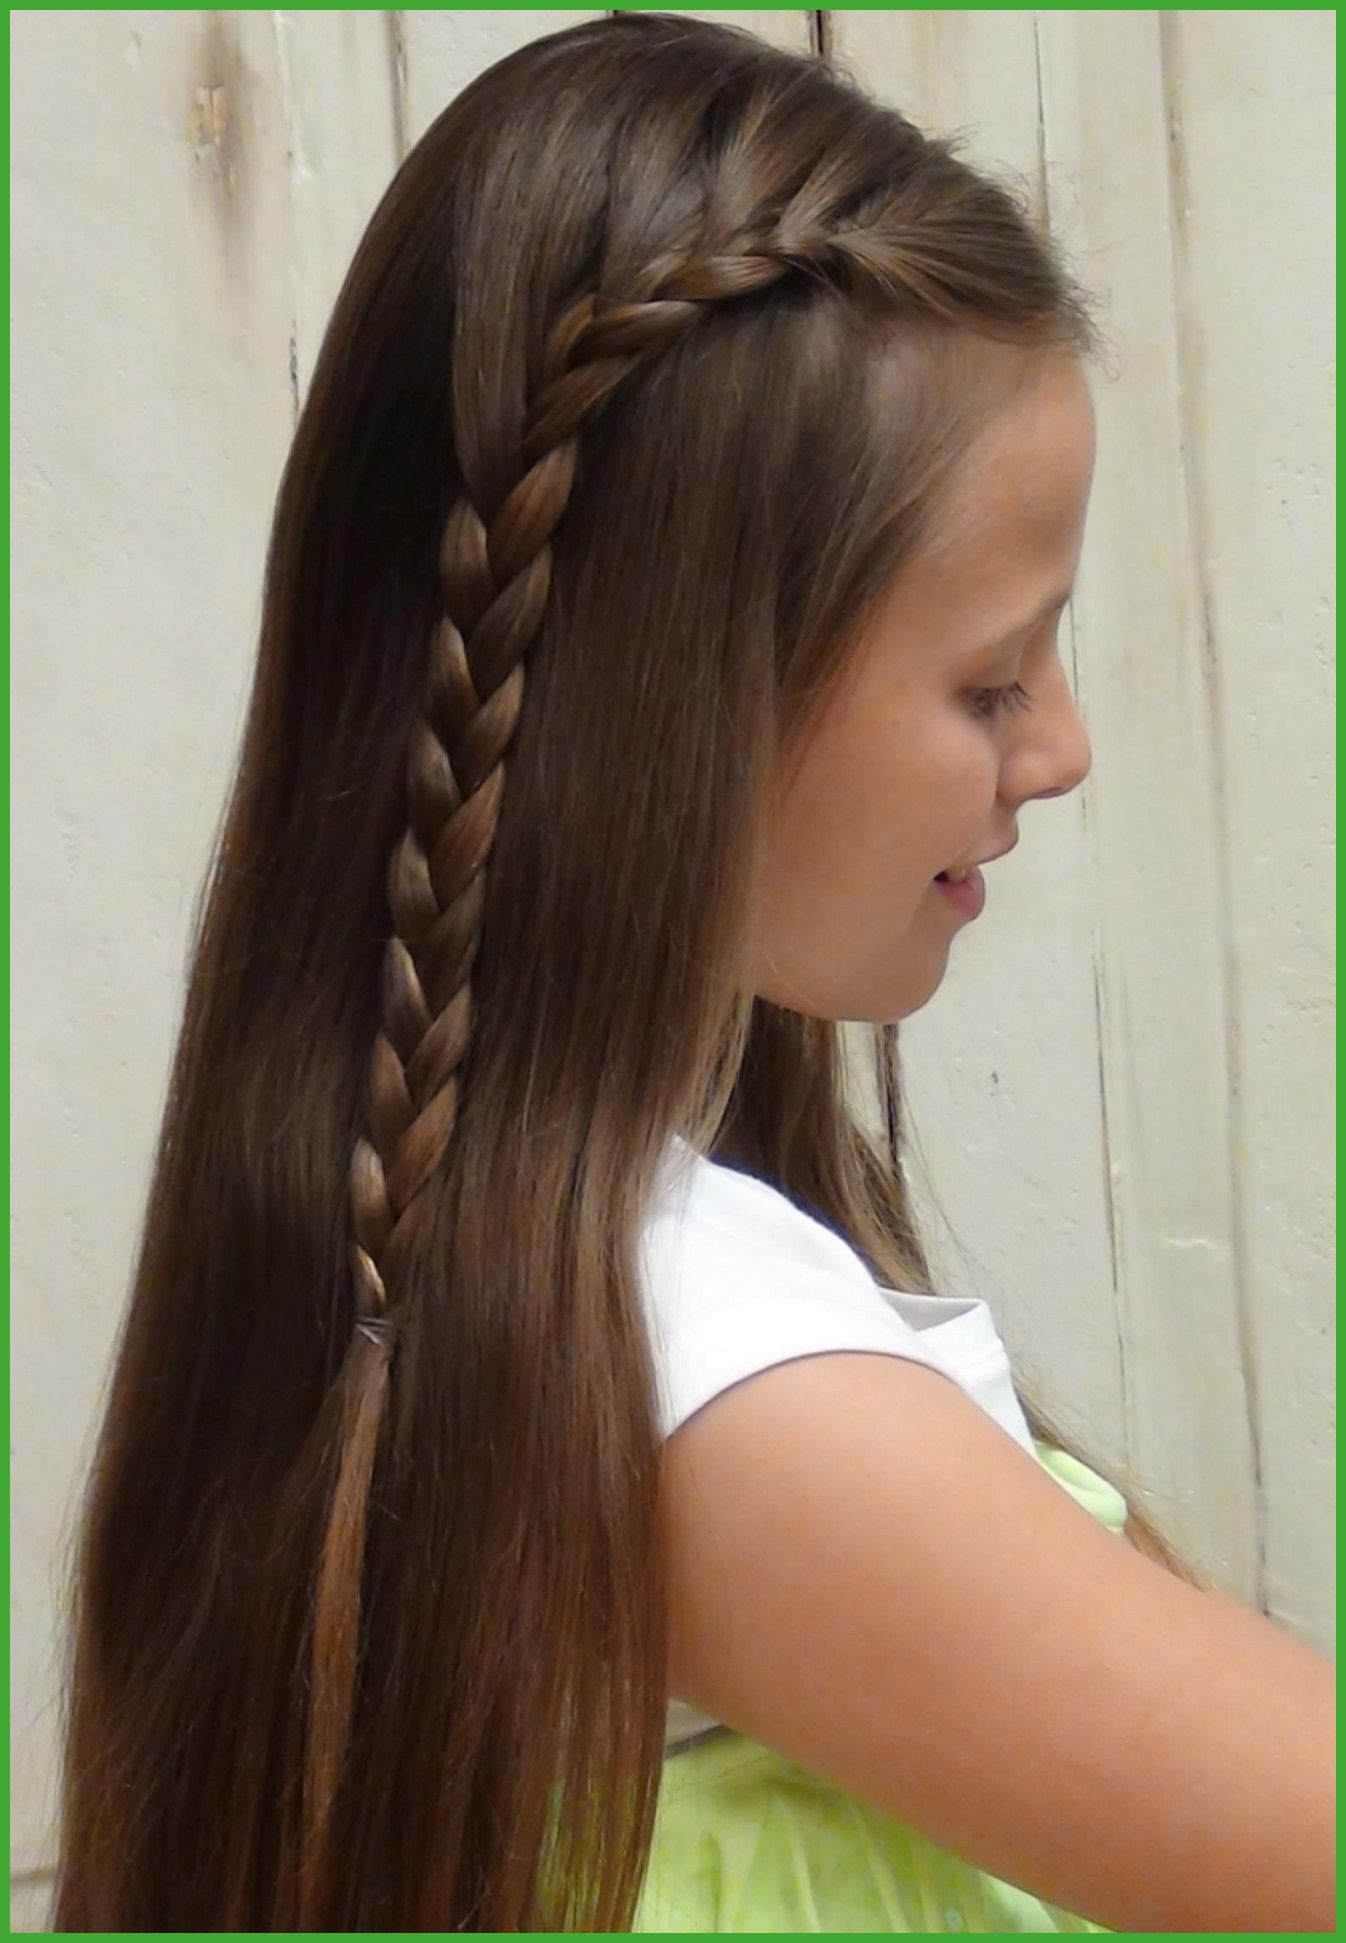 17 Winning Looks With Cool Easy Hairstyles Pictures Braided Hairstyles Easy Short Hair Styles Easy Goddess Braids Hairstyles